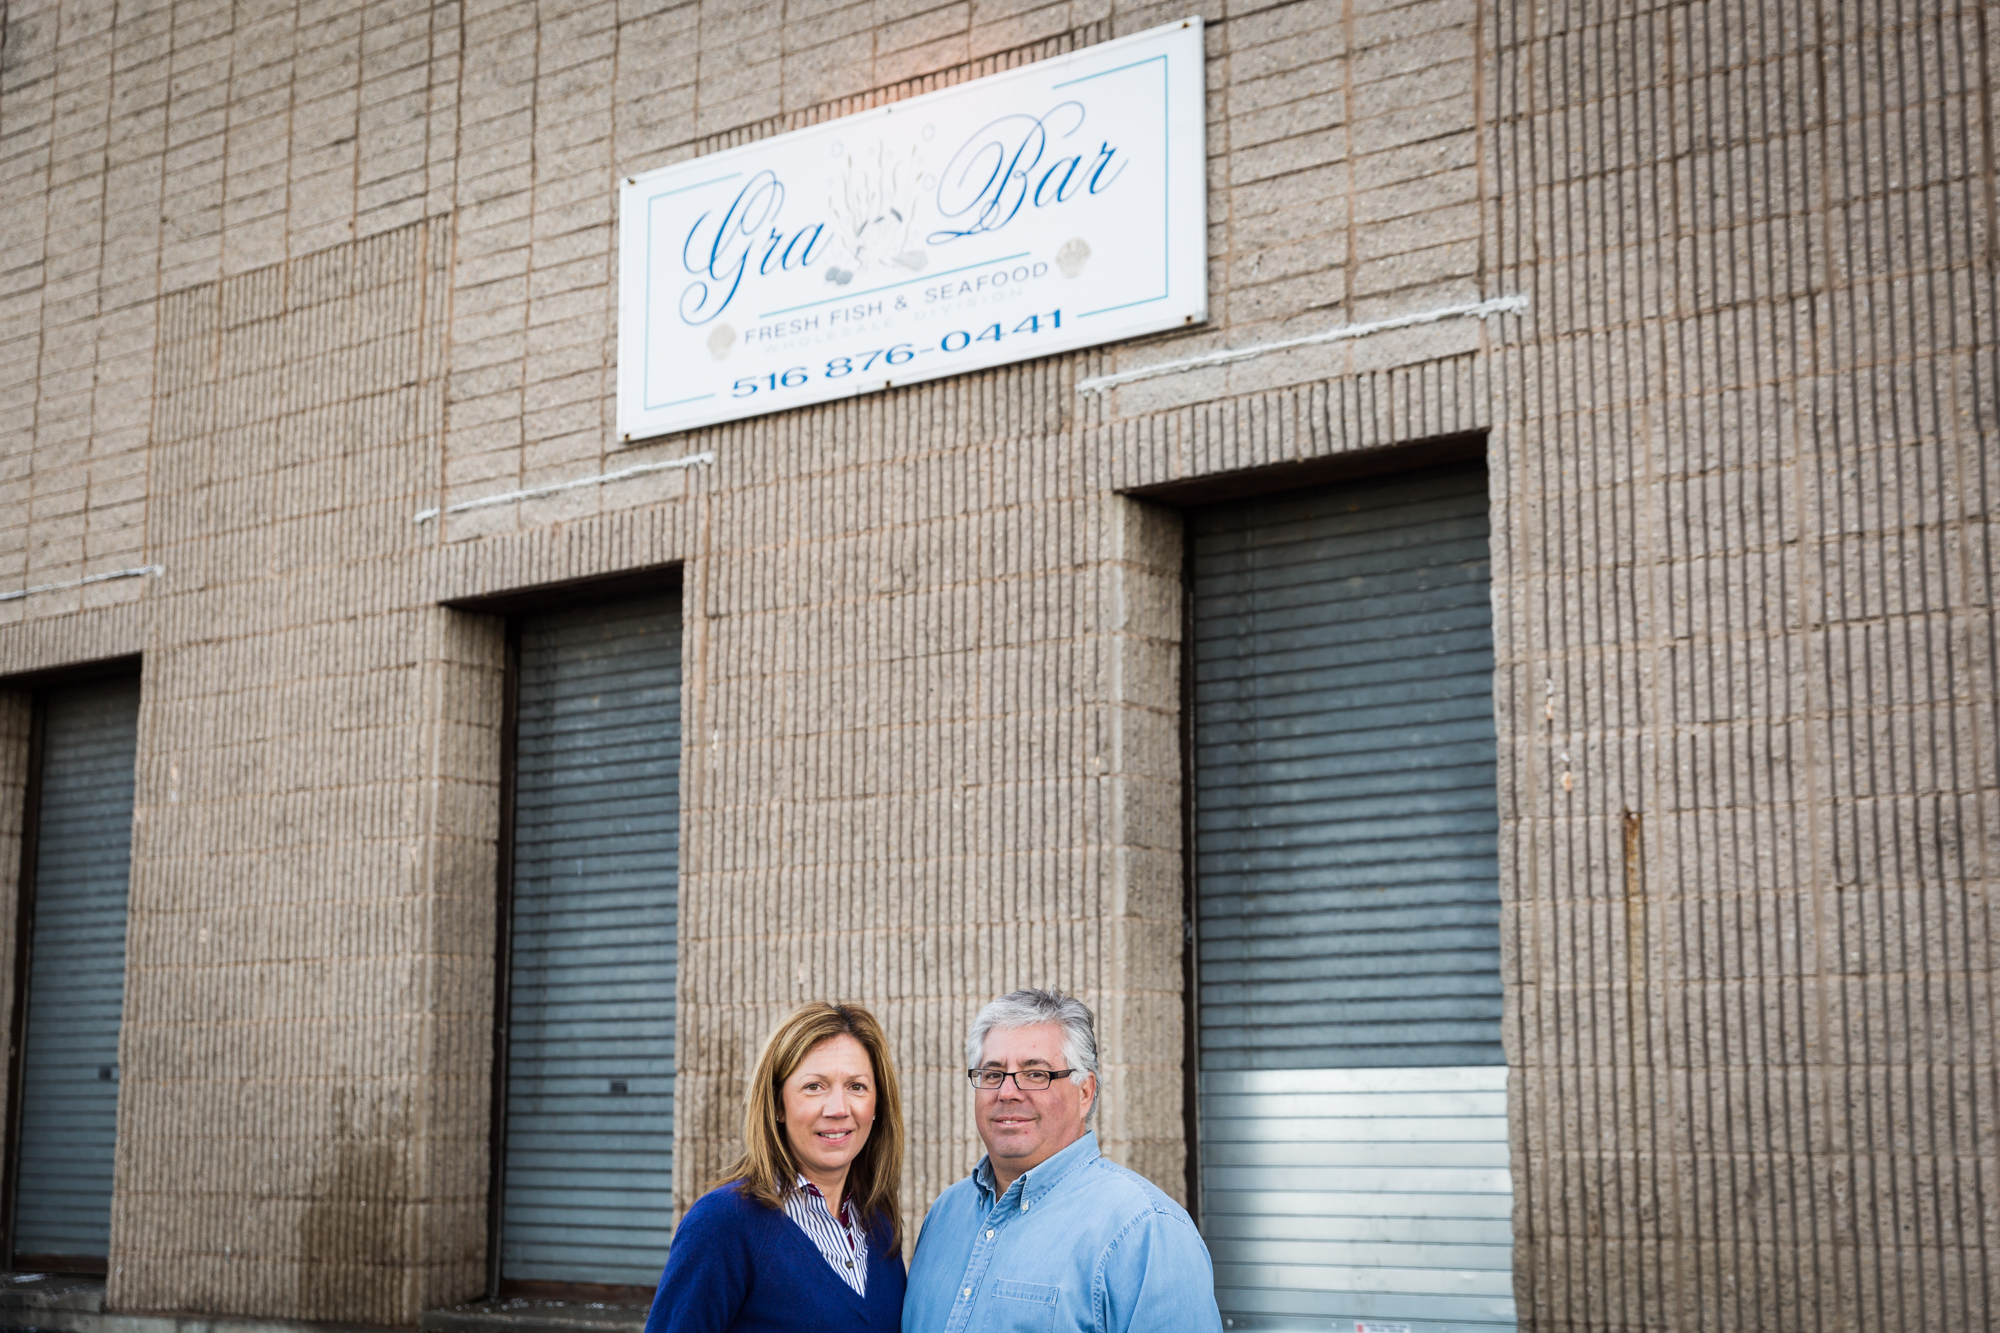 Owners of Gra Bar Fish for an article on website photography tips